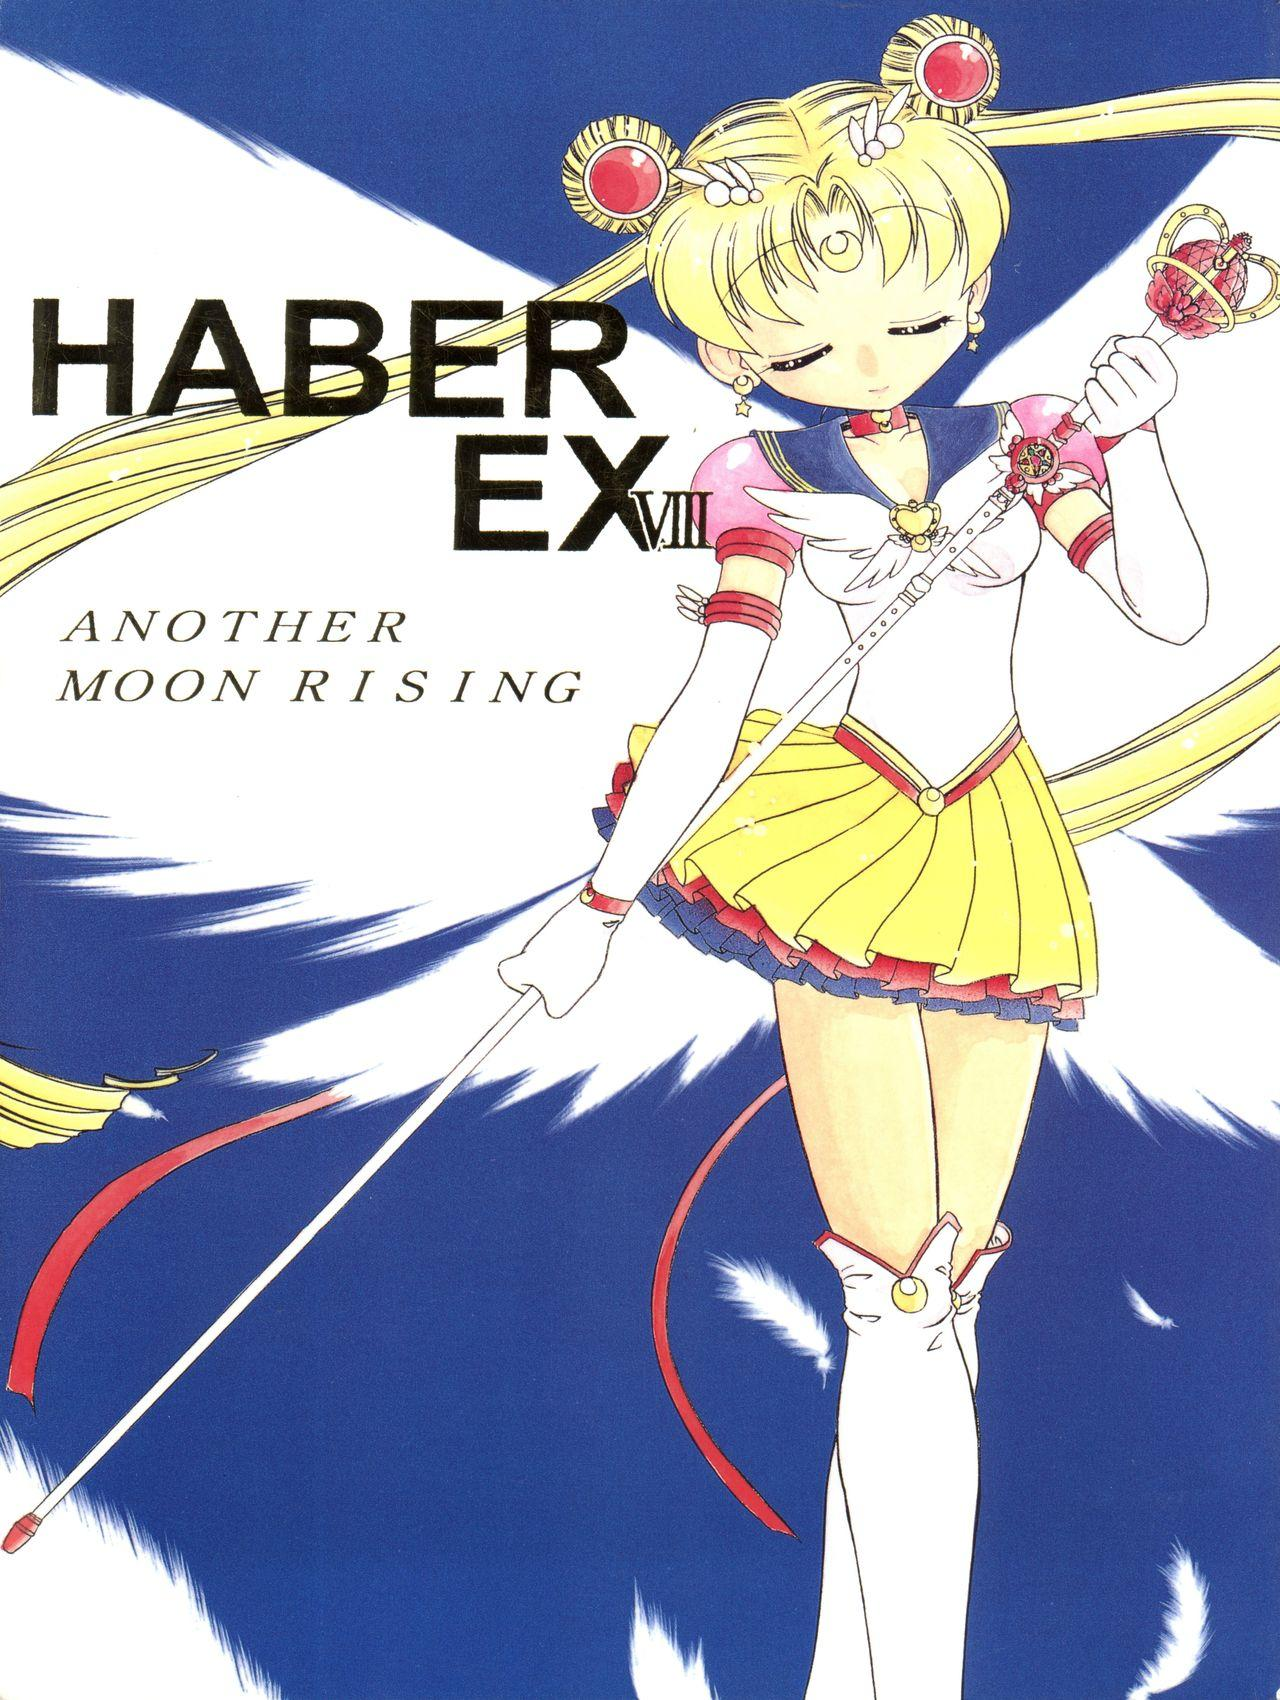 HABER EX VIII ANOTHER MOON RISING 0